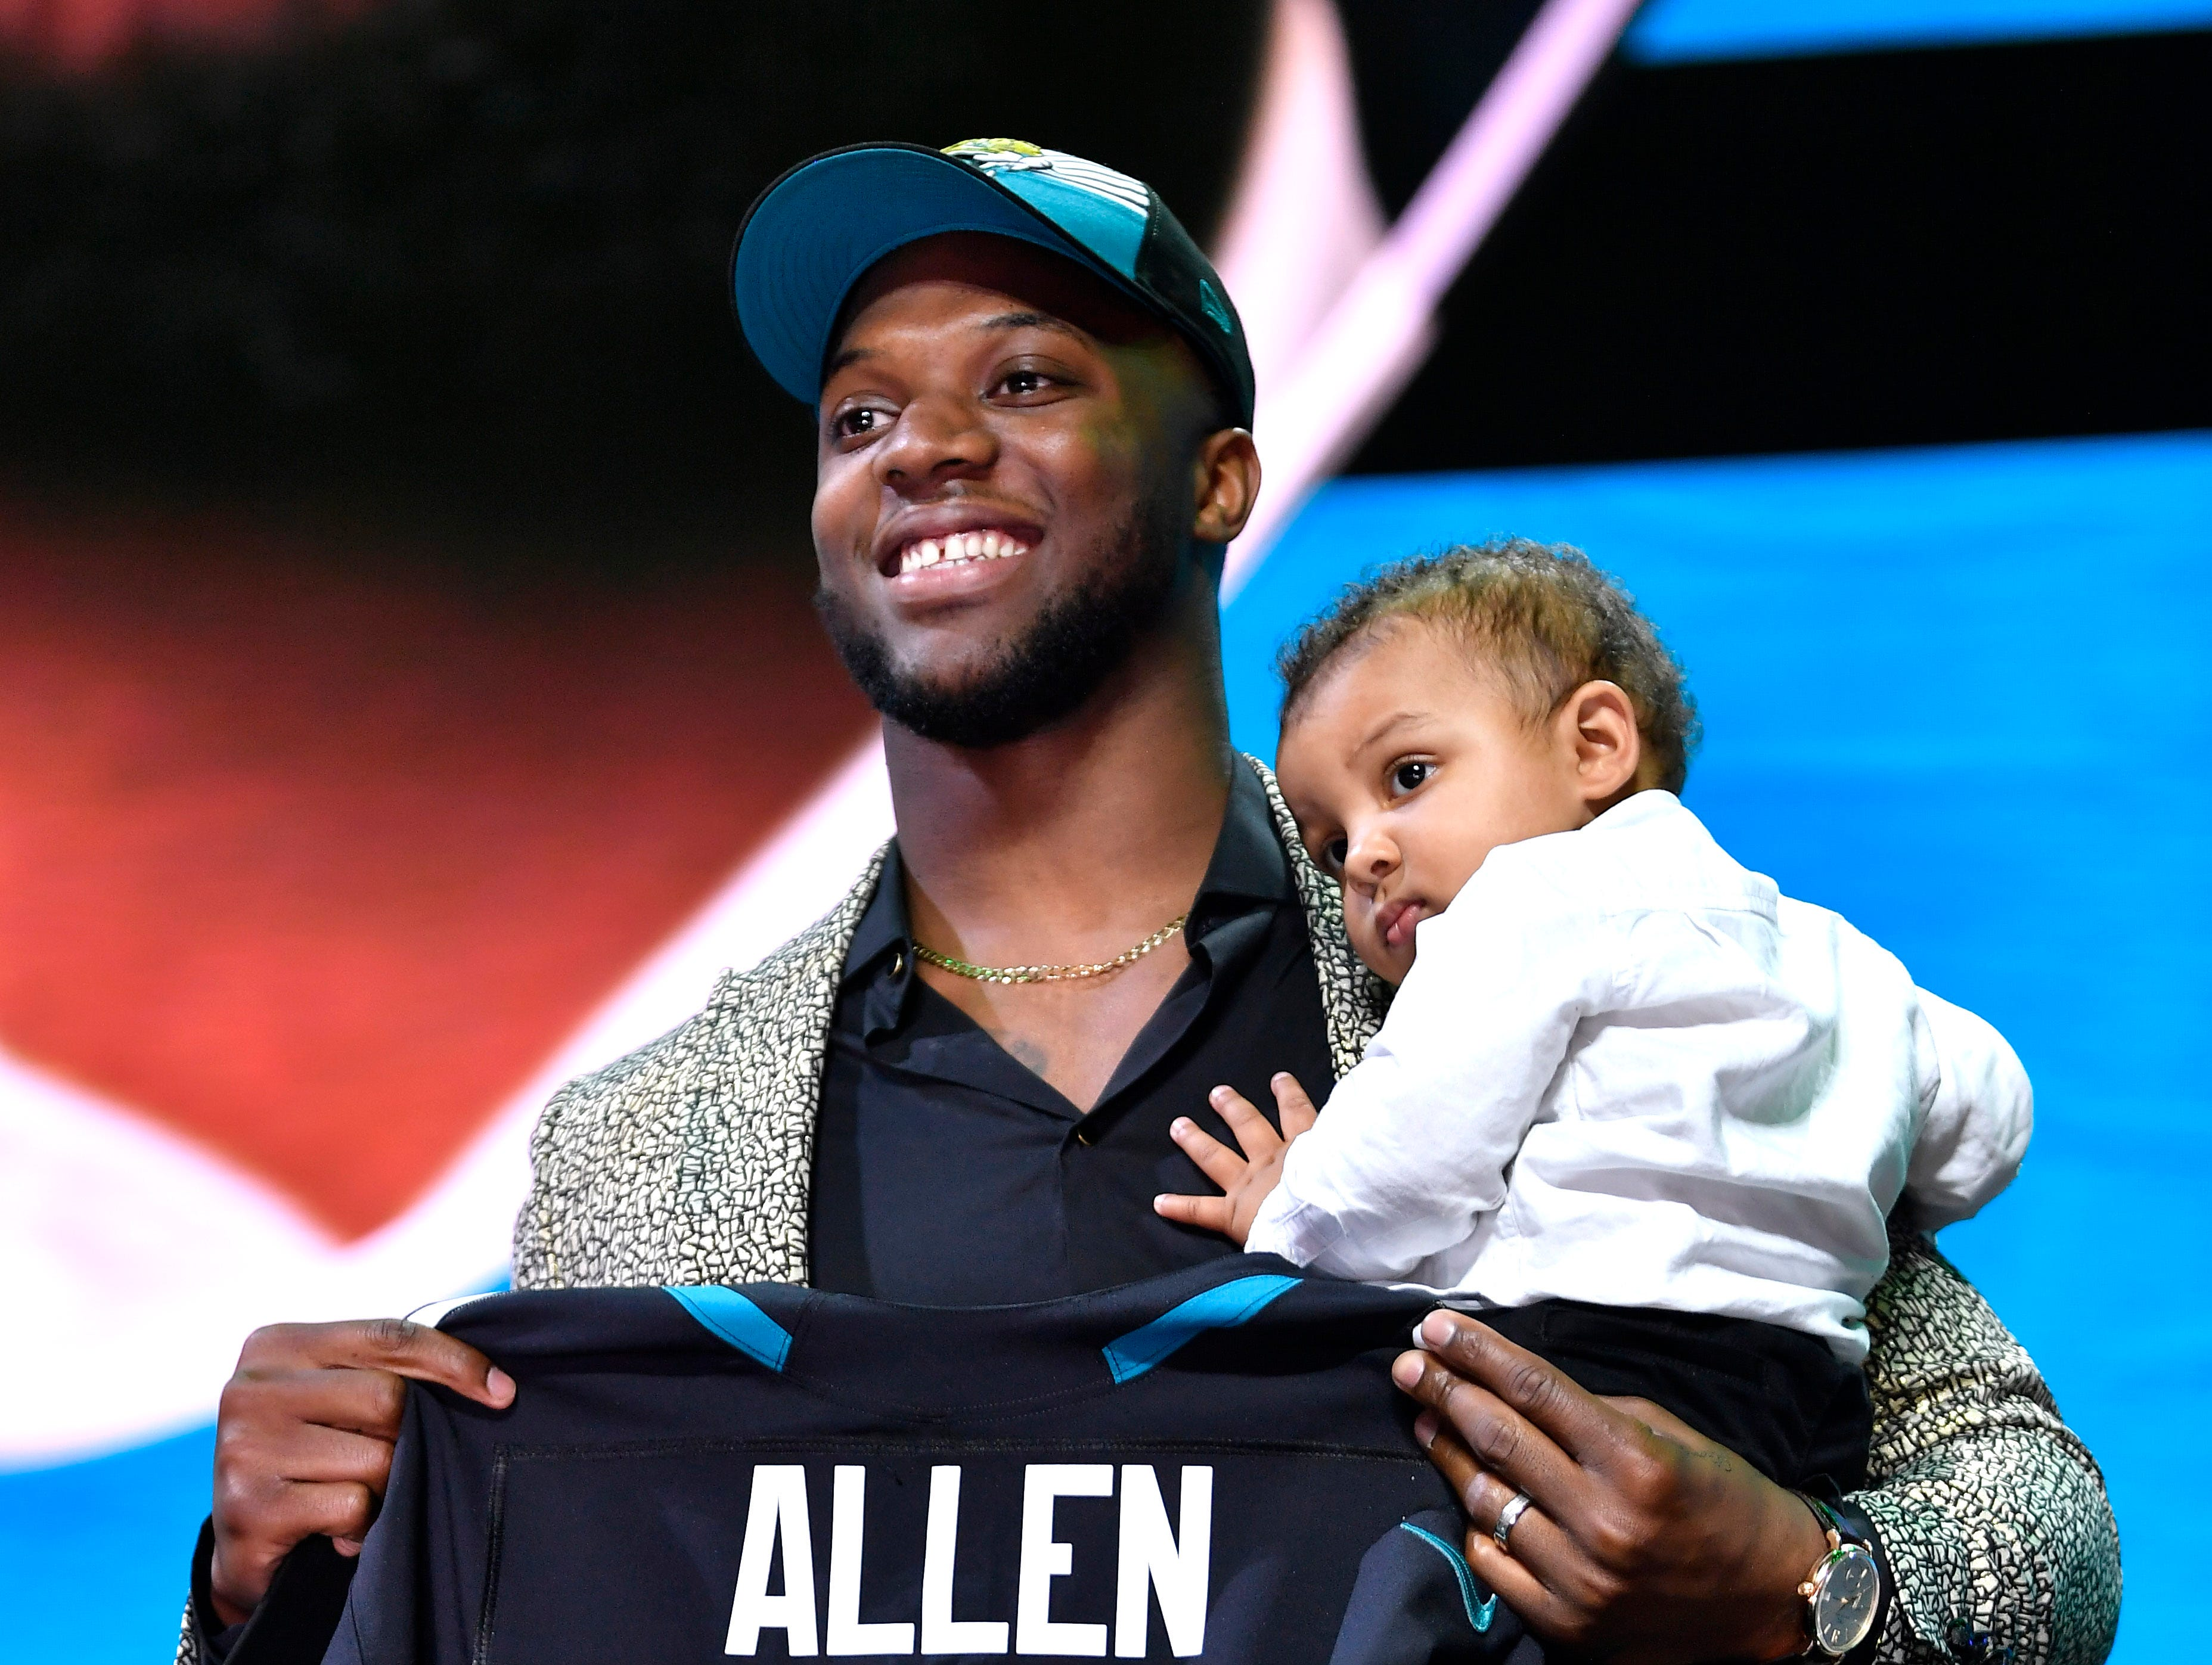 Josh Allen holds his son Wesley and his new Jacksonville Jaguars jersey after being picked during the first round of the NFL Draft Thursday, April 25, 2019, in Nashville, Tenn.